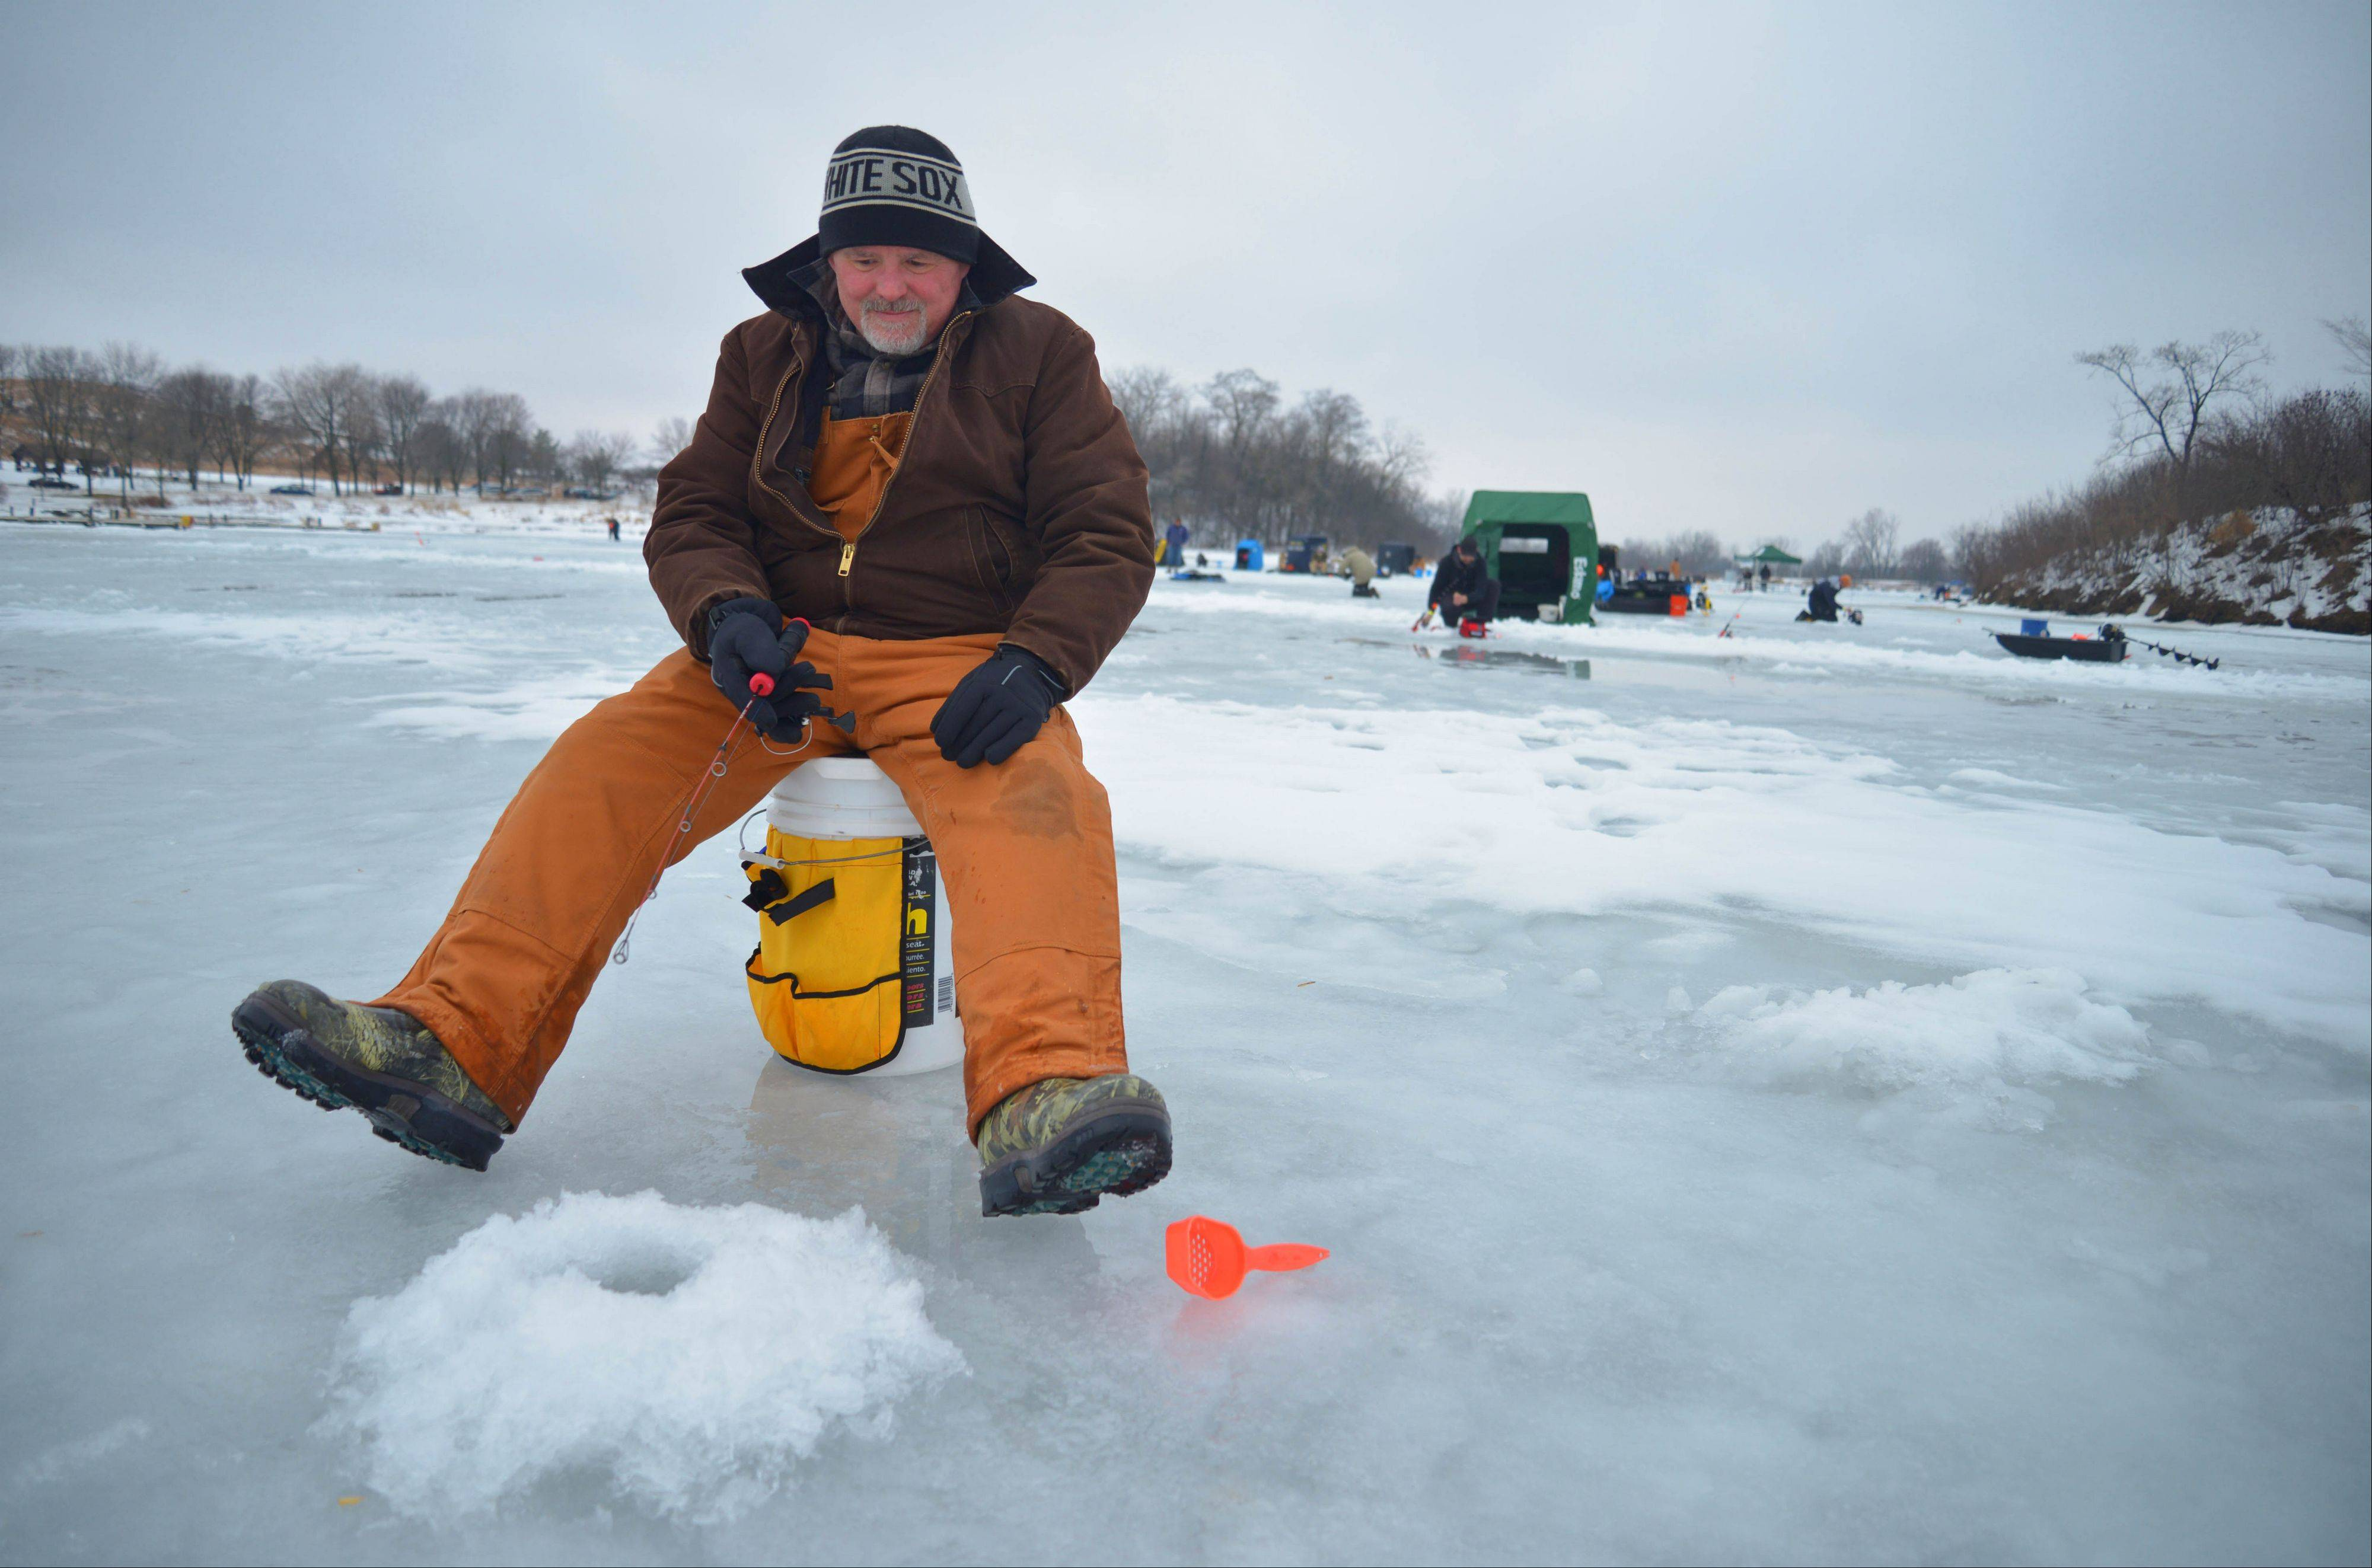 Bob Pieczynski of Bolingbrook was one of more than 100 fisherman to take part in the Hard Water Classic ice-fishing tournament Saturday at Blackwell Forest Preserve.